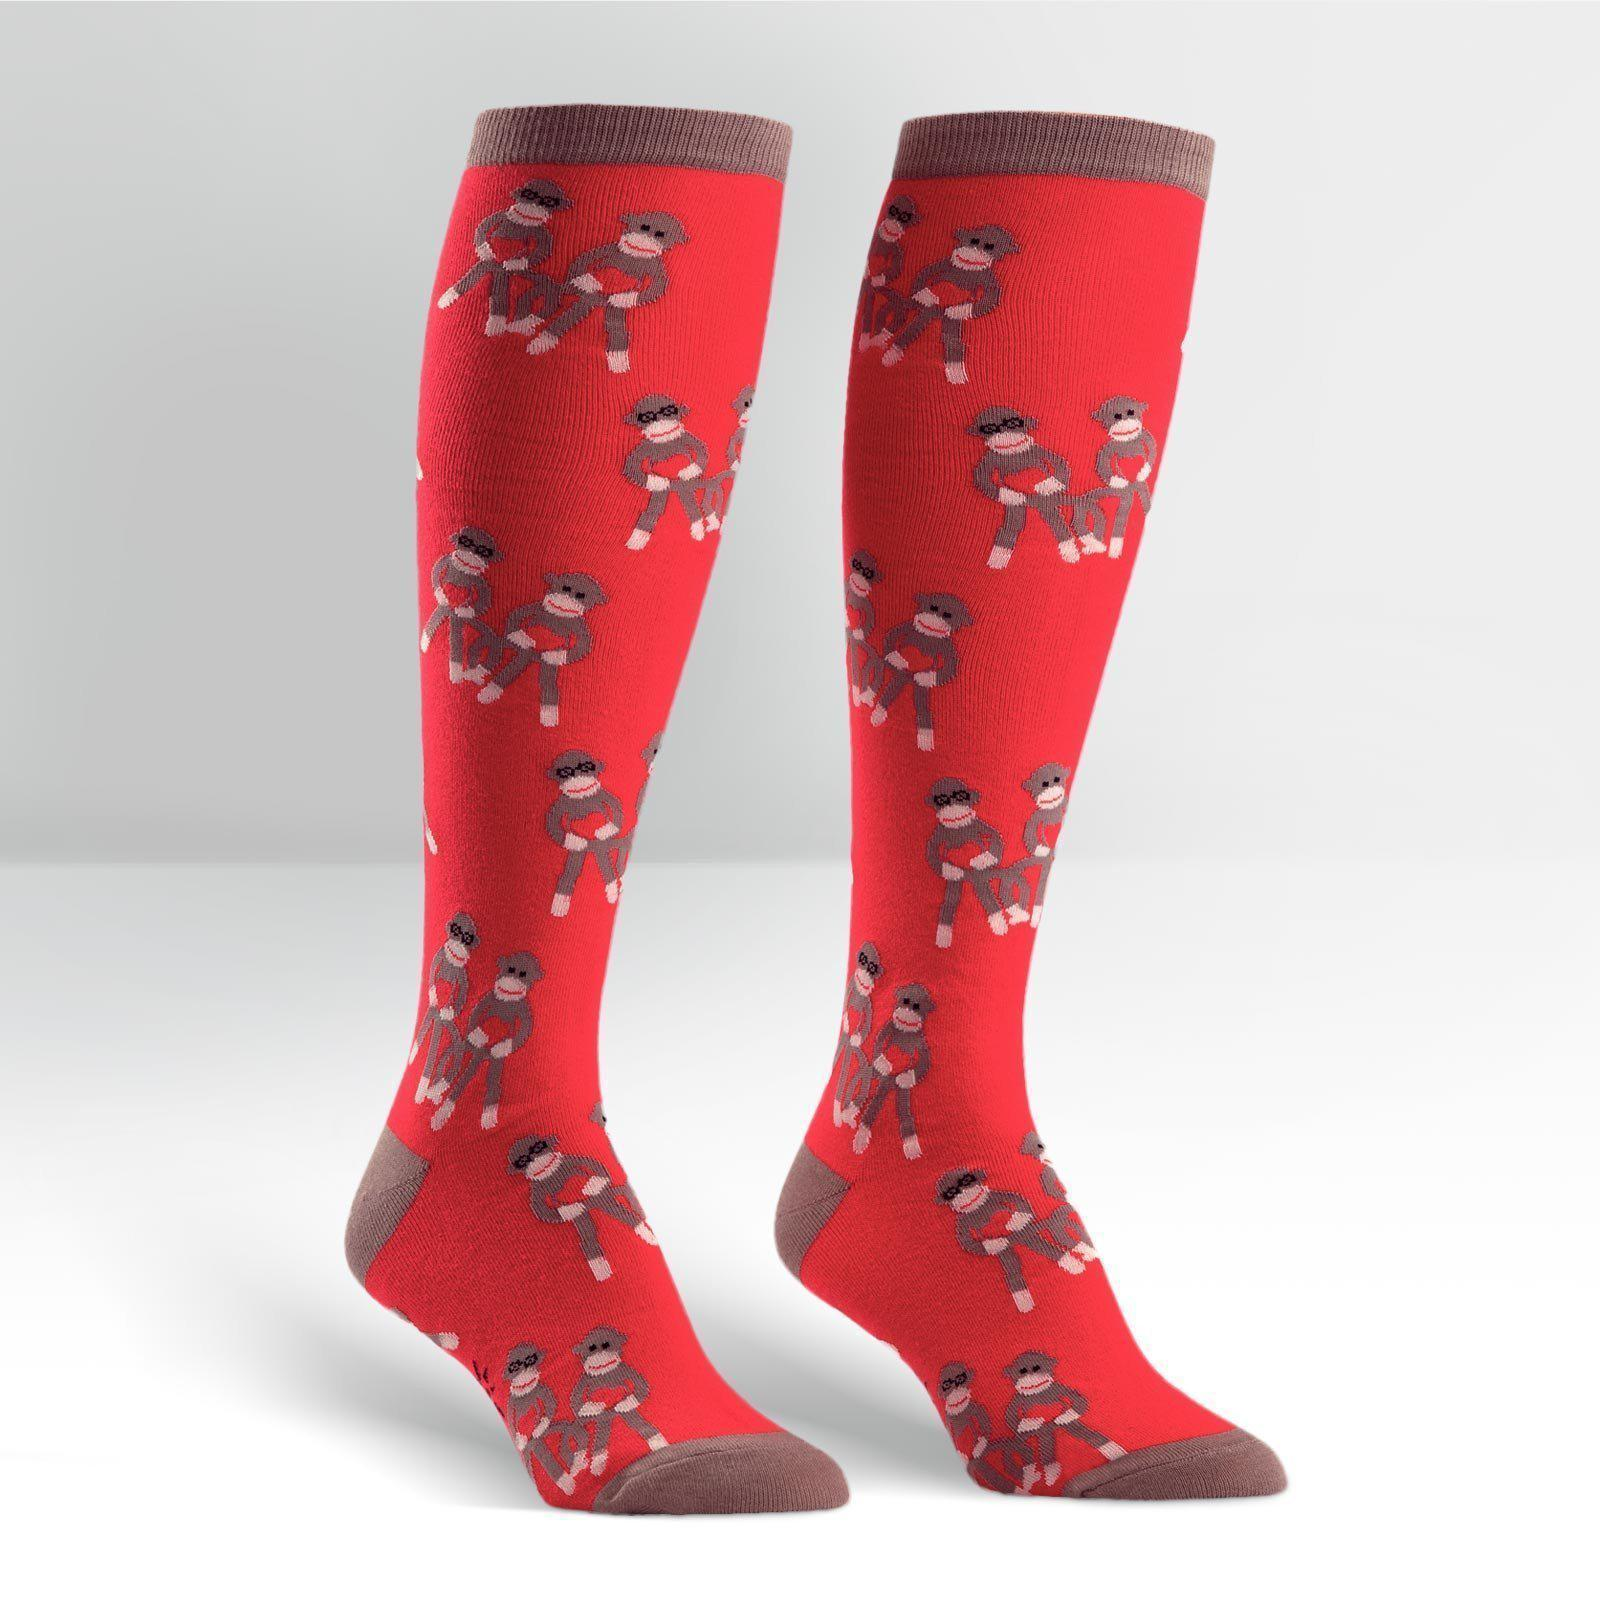 Sock It To Me - Sock Monkey Love Knee High Socks | Women's - Knock Your Socks Off